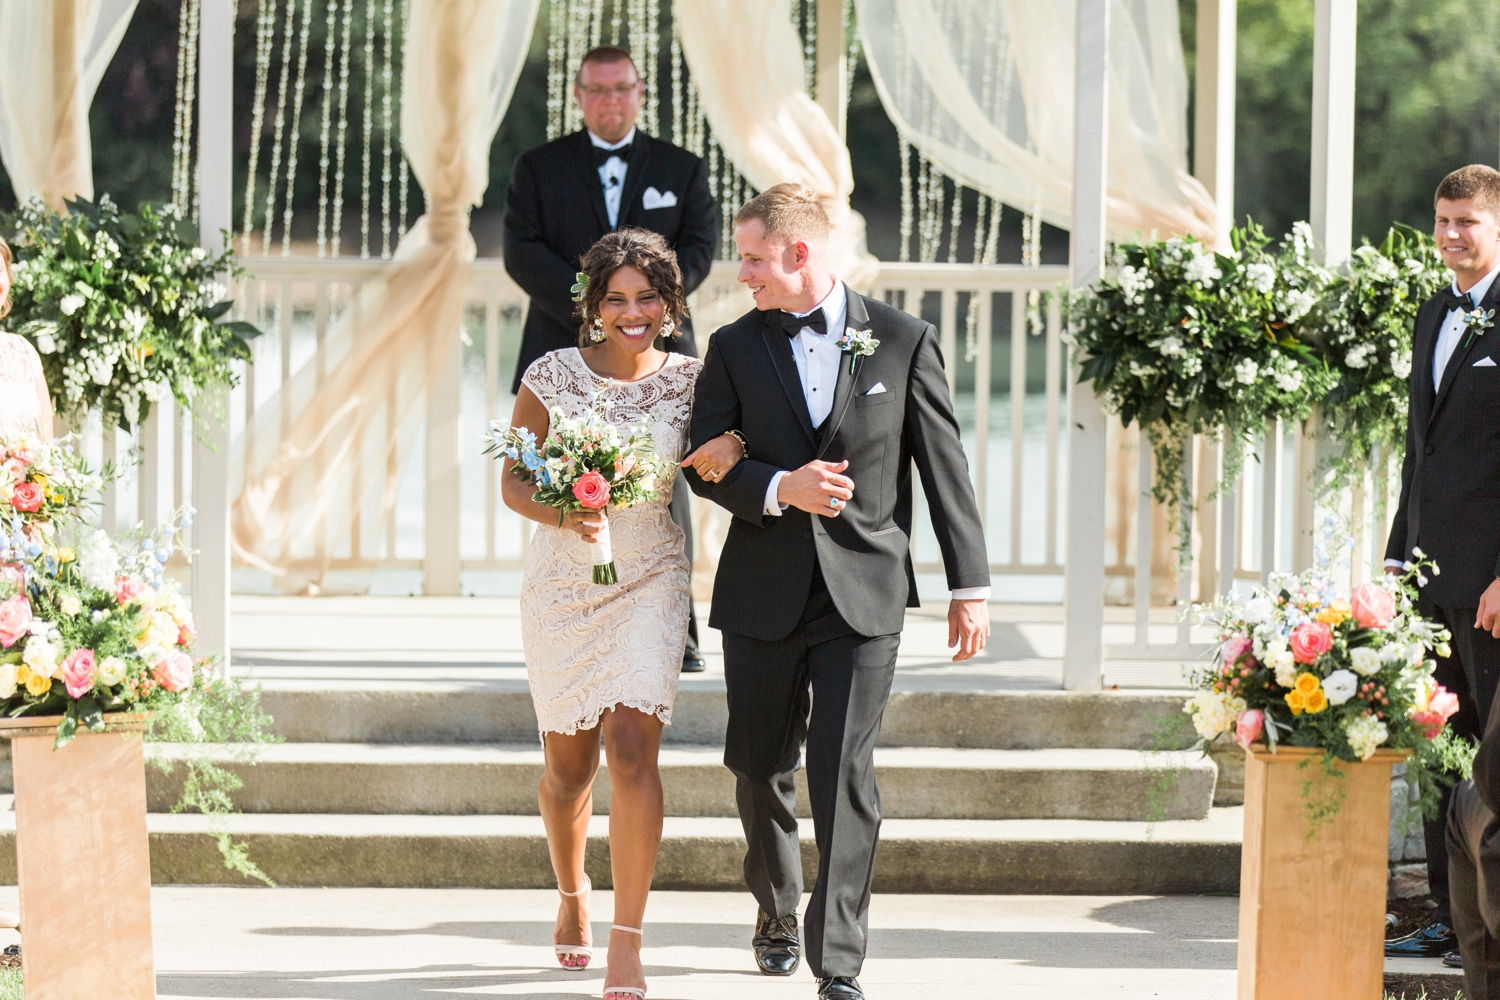 Wedding-at-The-Savannah-Center-West-Chester-Ohio-Photography-Chloe-Luka-Photography_7508.jpg